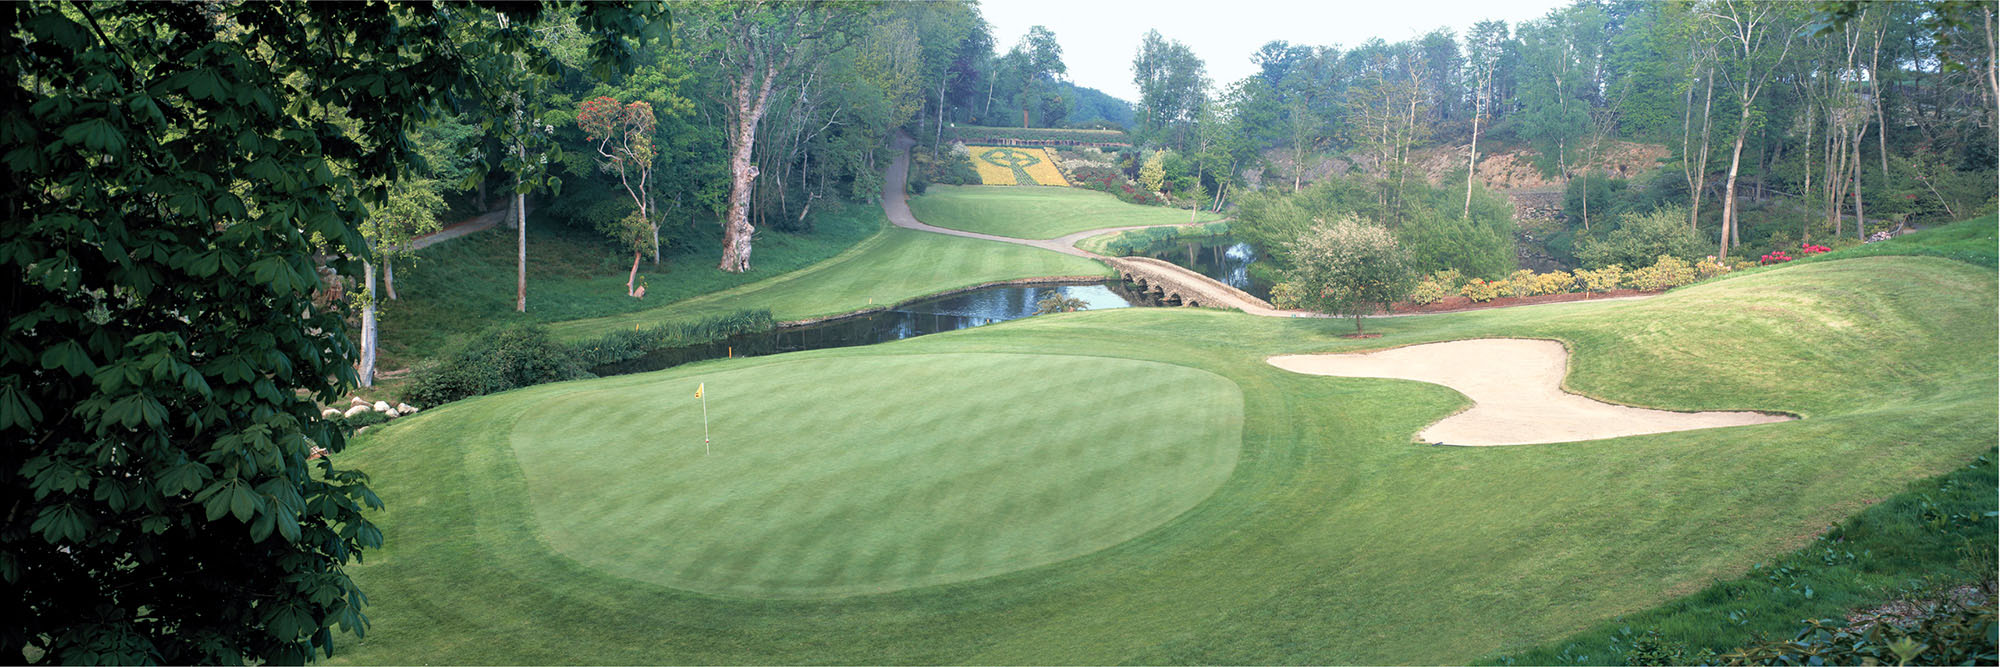 Golf Course Image - Druids Glen No. 12